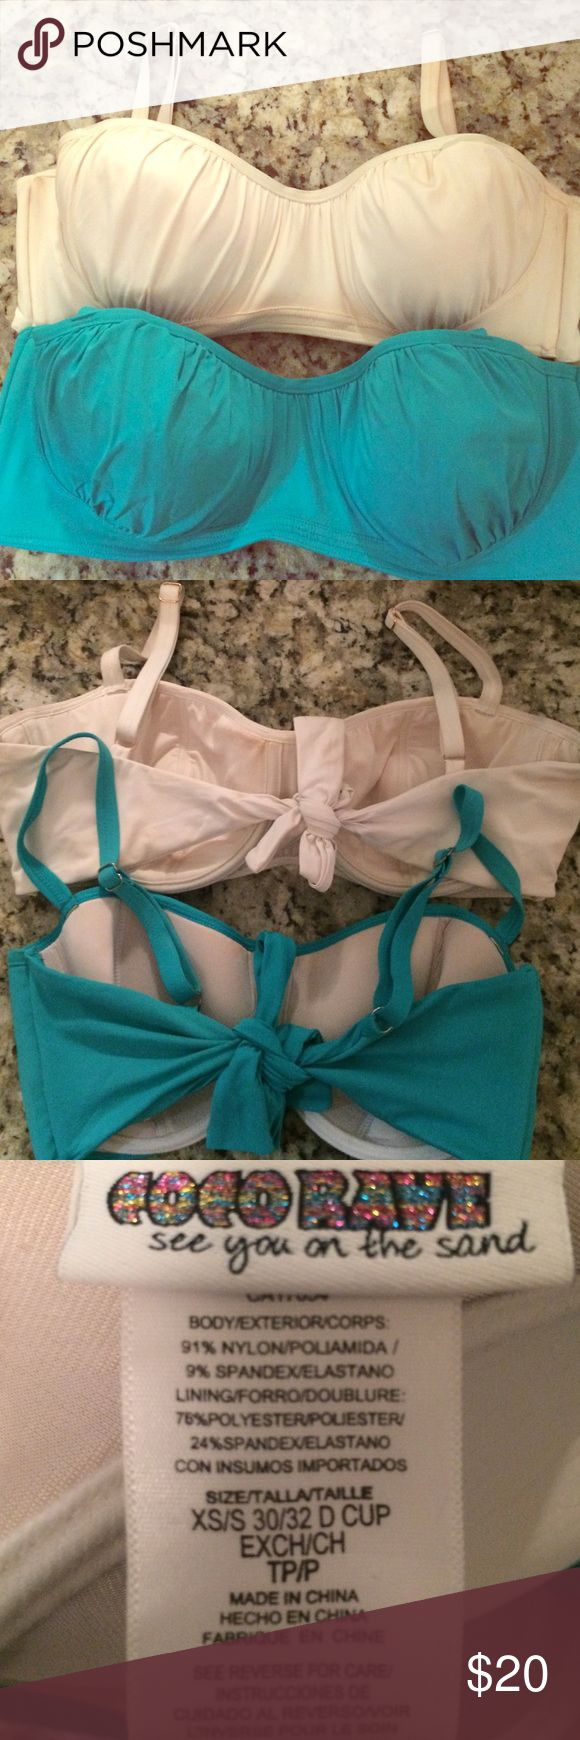 Bundle of 2: Coco Rave underwire Demi cup bikini Cream and teal green color both size XS/S 30/32 D fits tts. EUC BOTH! Smoke-free home. Coco Rave Swim Bikinis